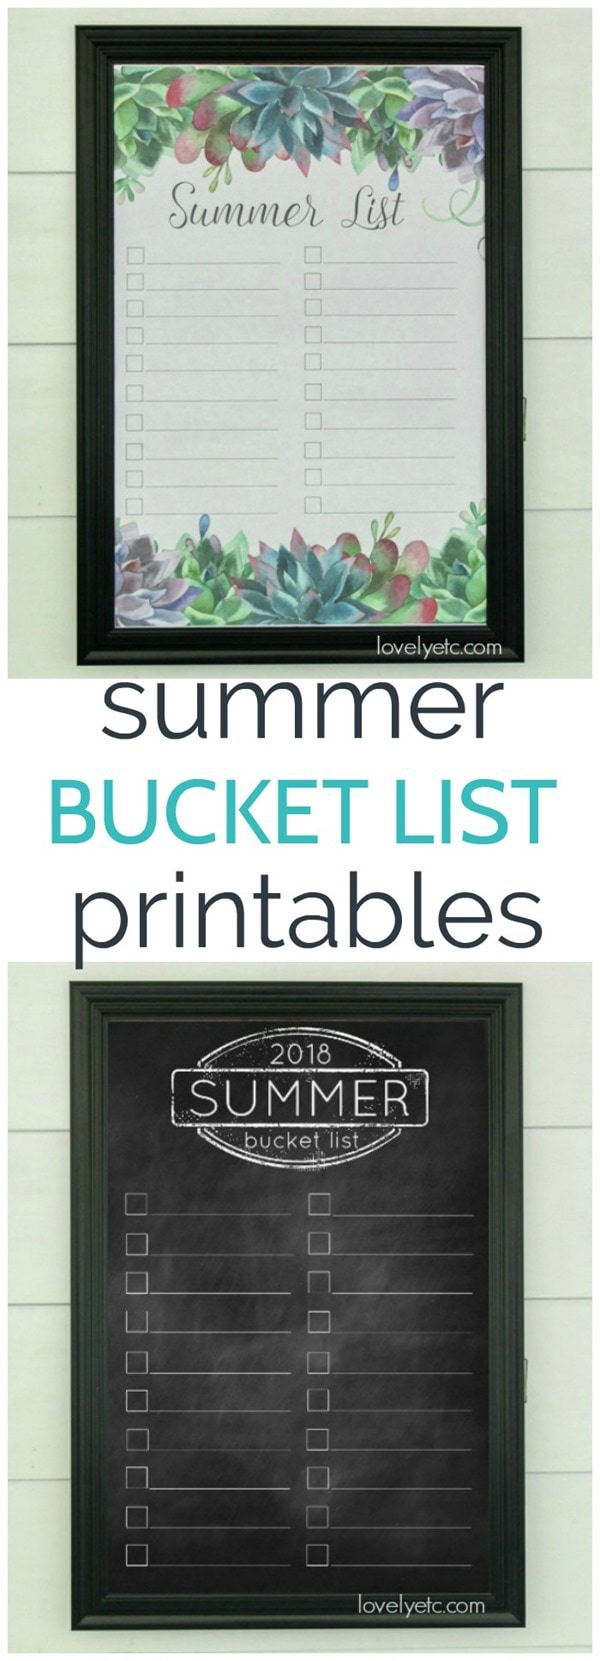 2018 summer bucket list free printables. Print them out at home or turn them into posters for cheap as engineering prints.